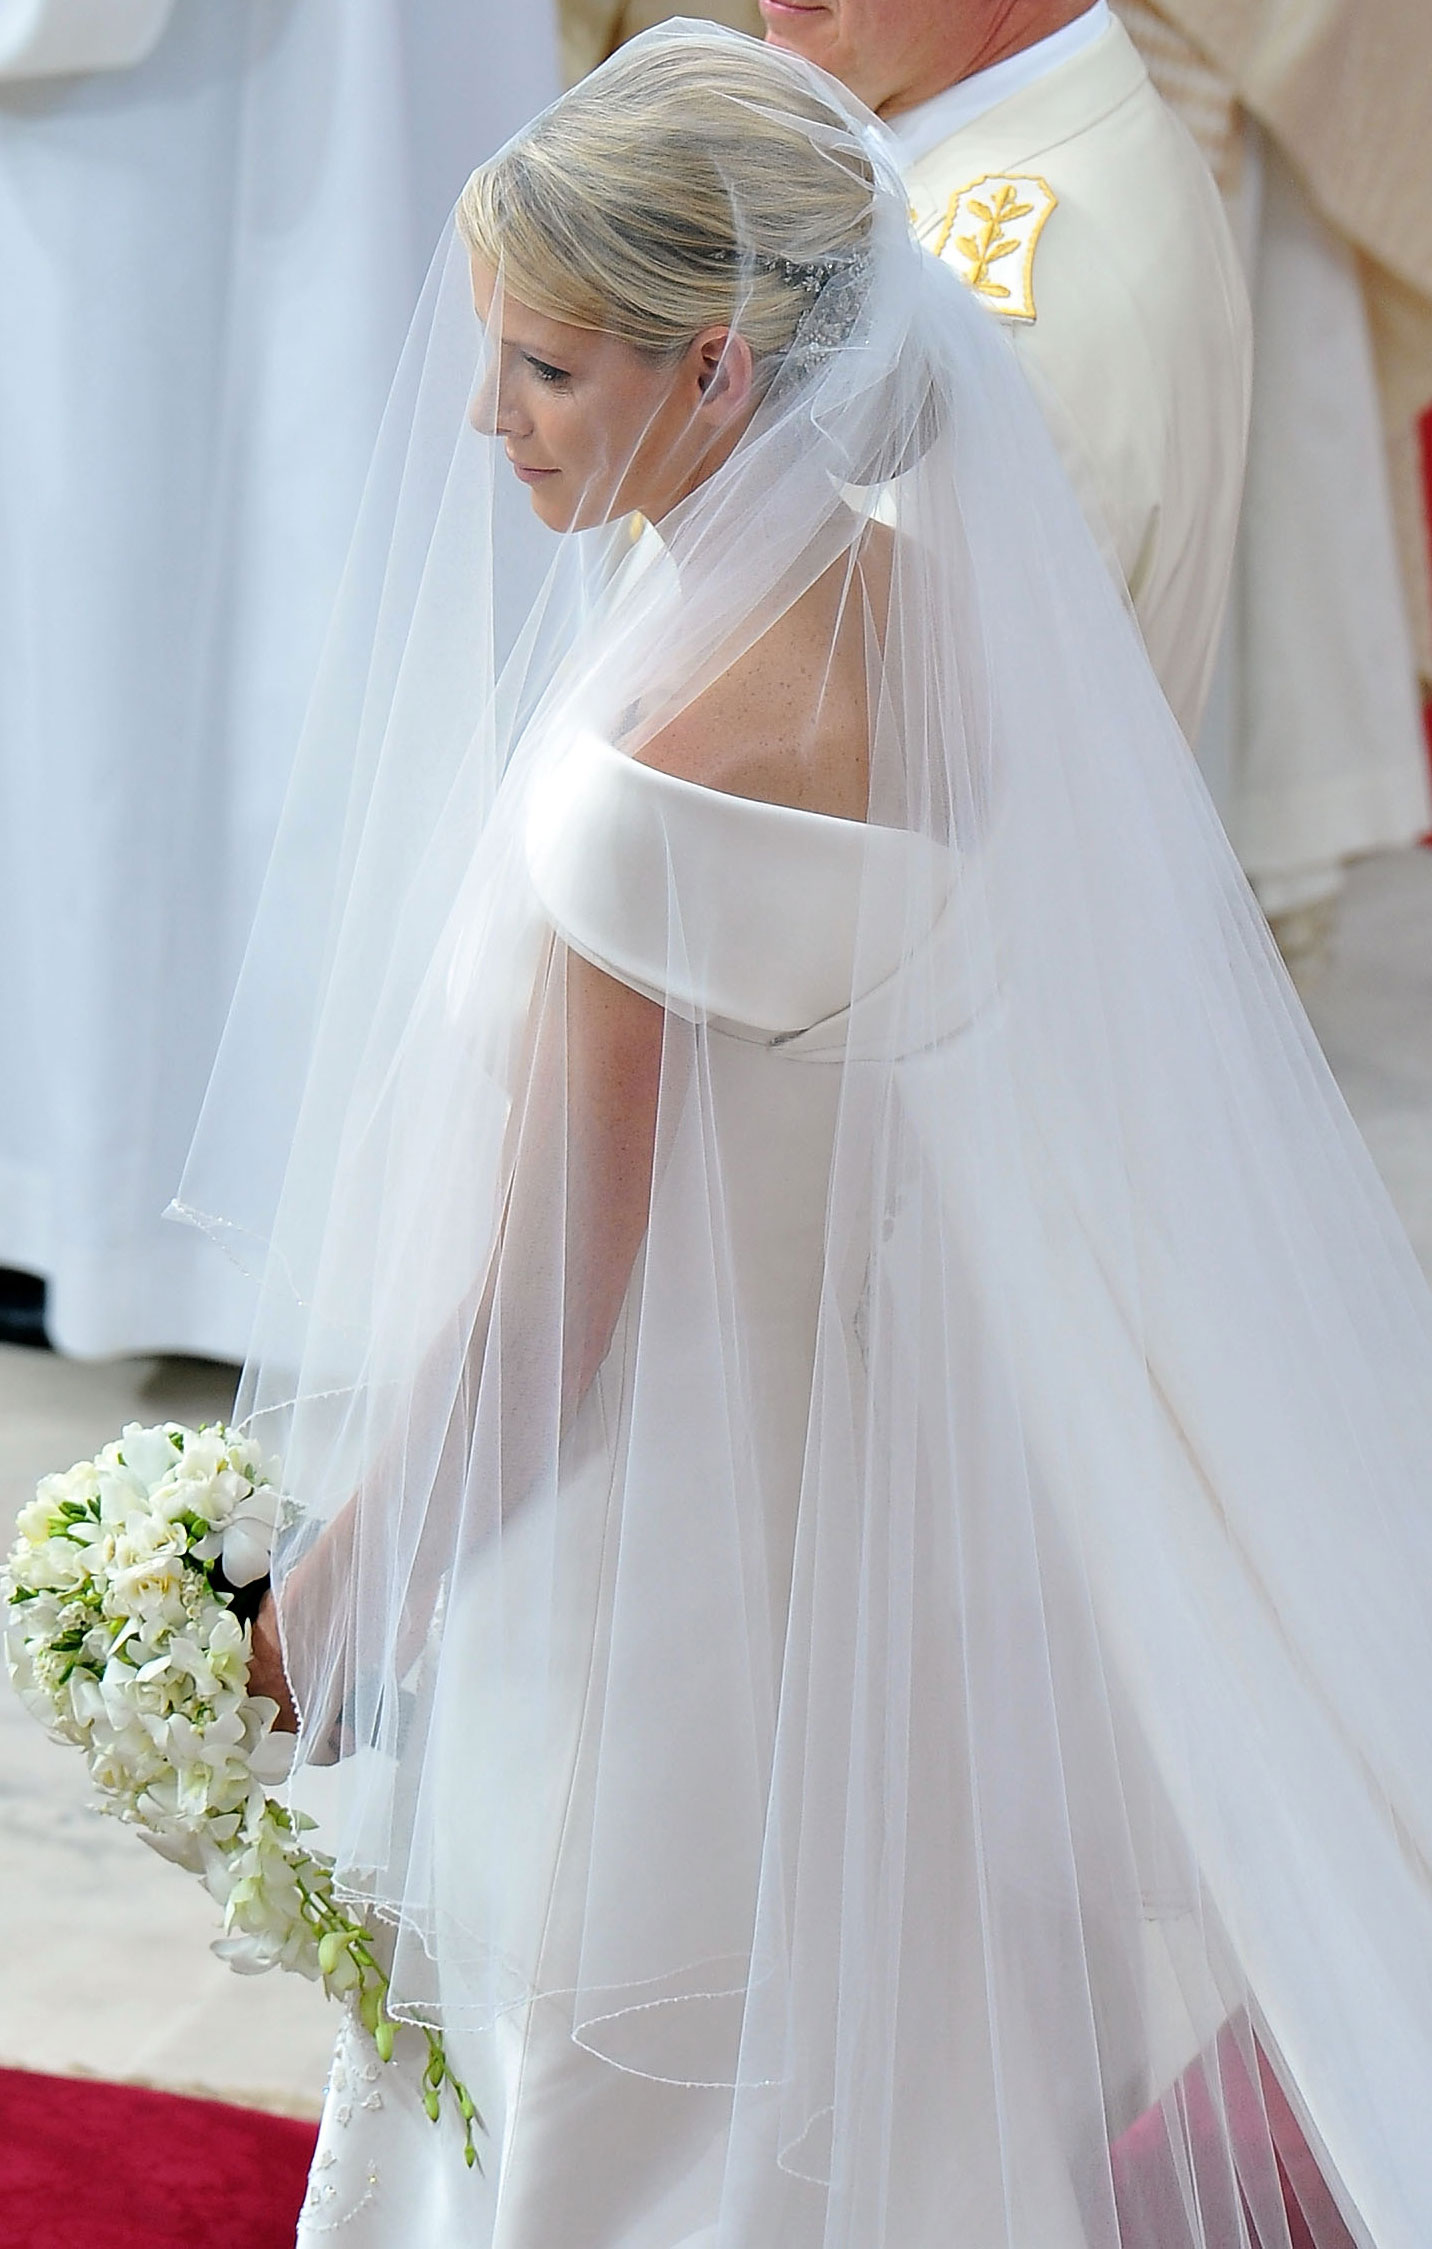 Charlene Wittstock and Prince Albert Are Married ...